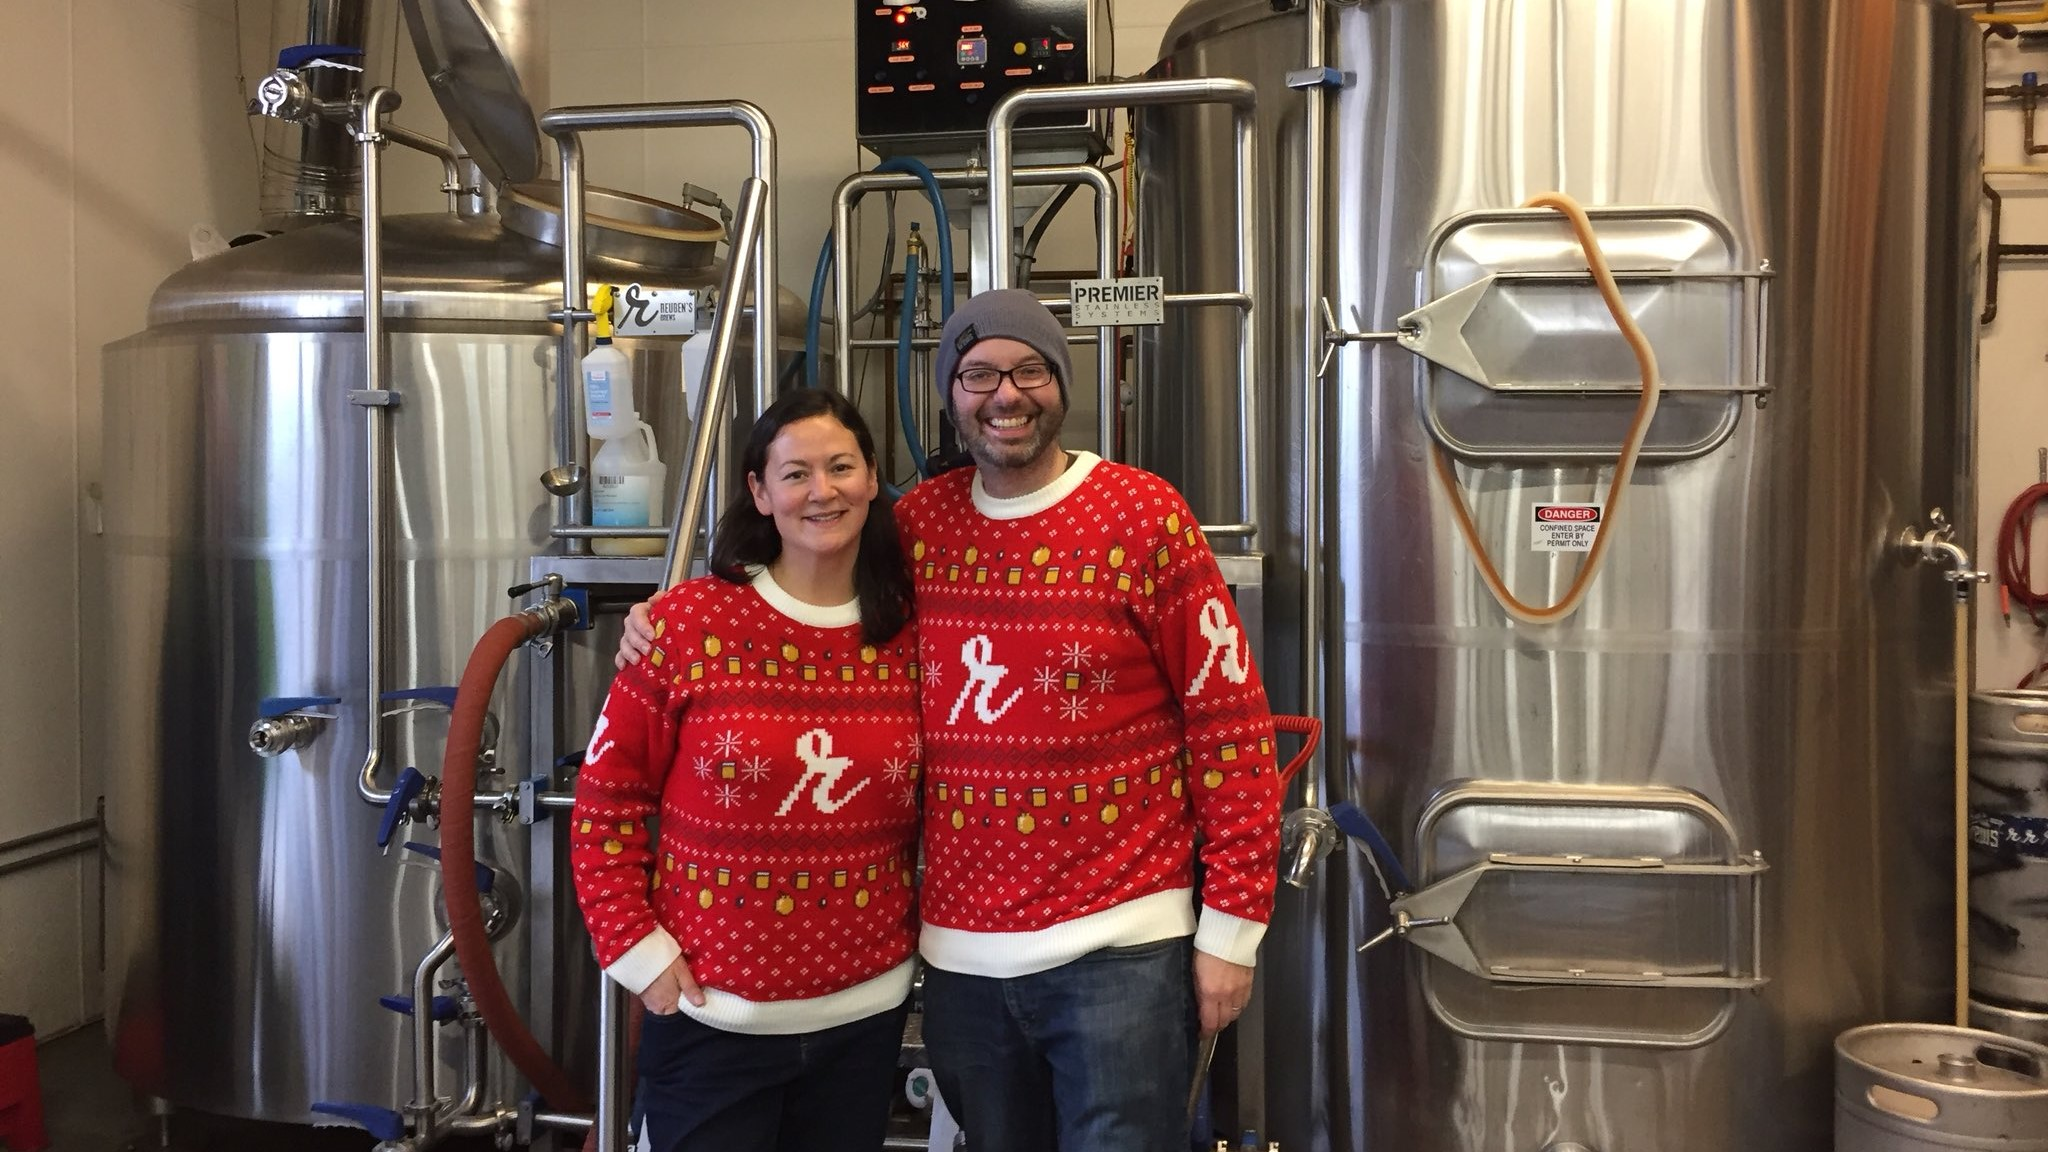 Adam and Grace Robbings of Seattle's Reuben's Brews in their holiday sweaters.